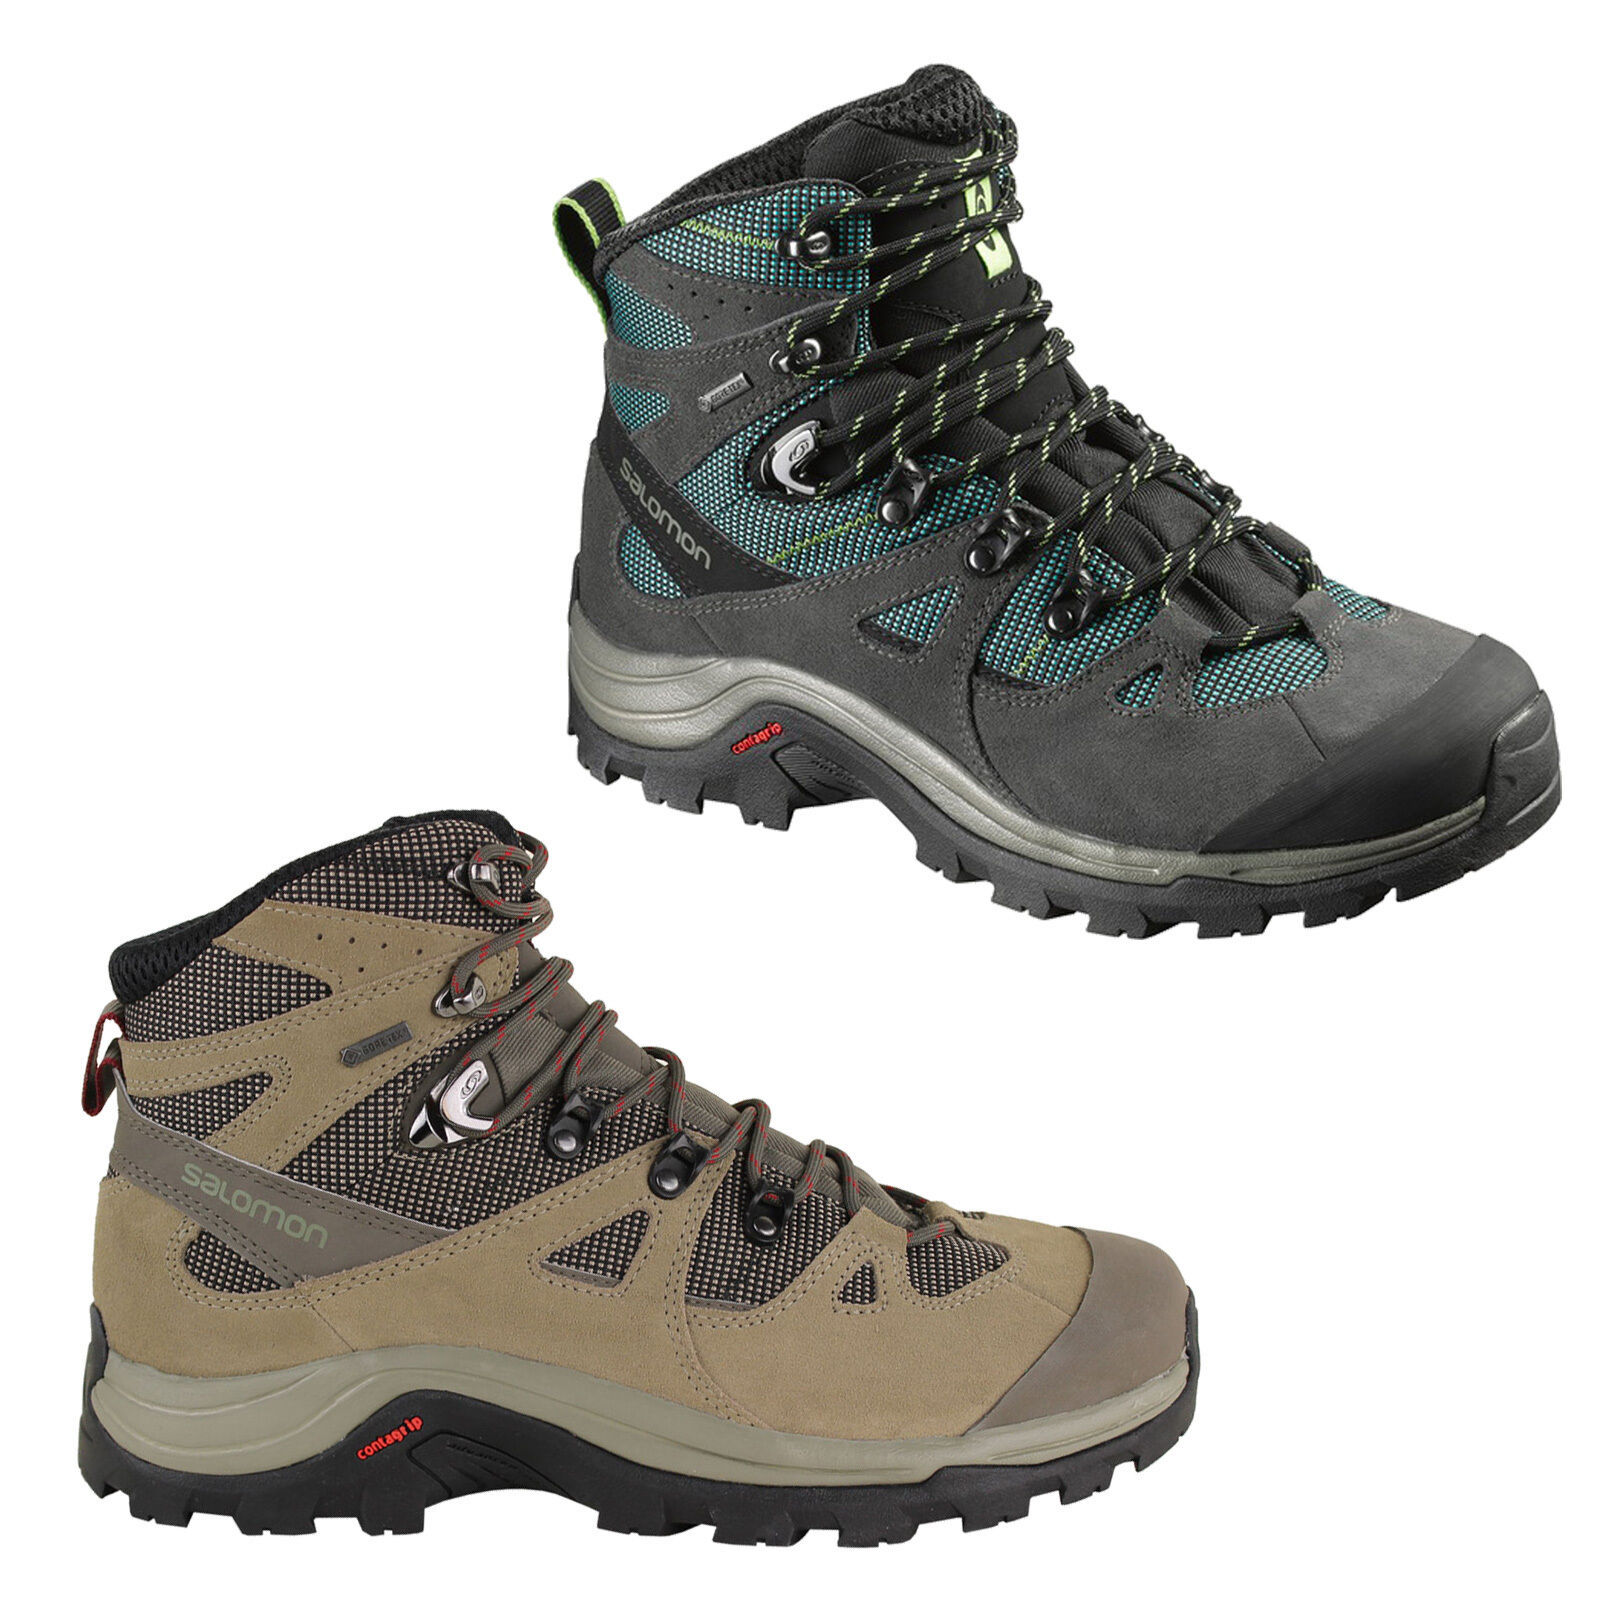 Salomon Discovery GTX womens shoes Trekking Shoes Hiking Boots Outdoor Boots